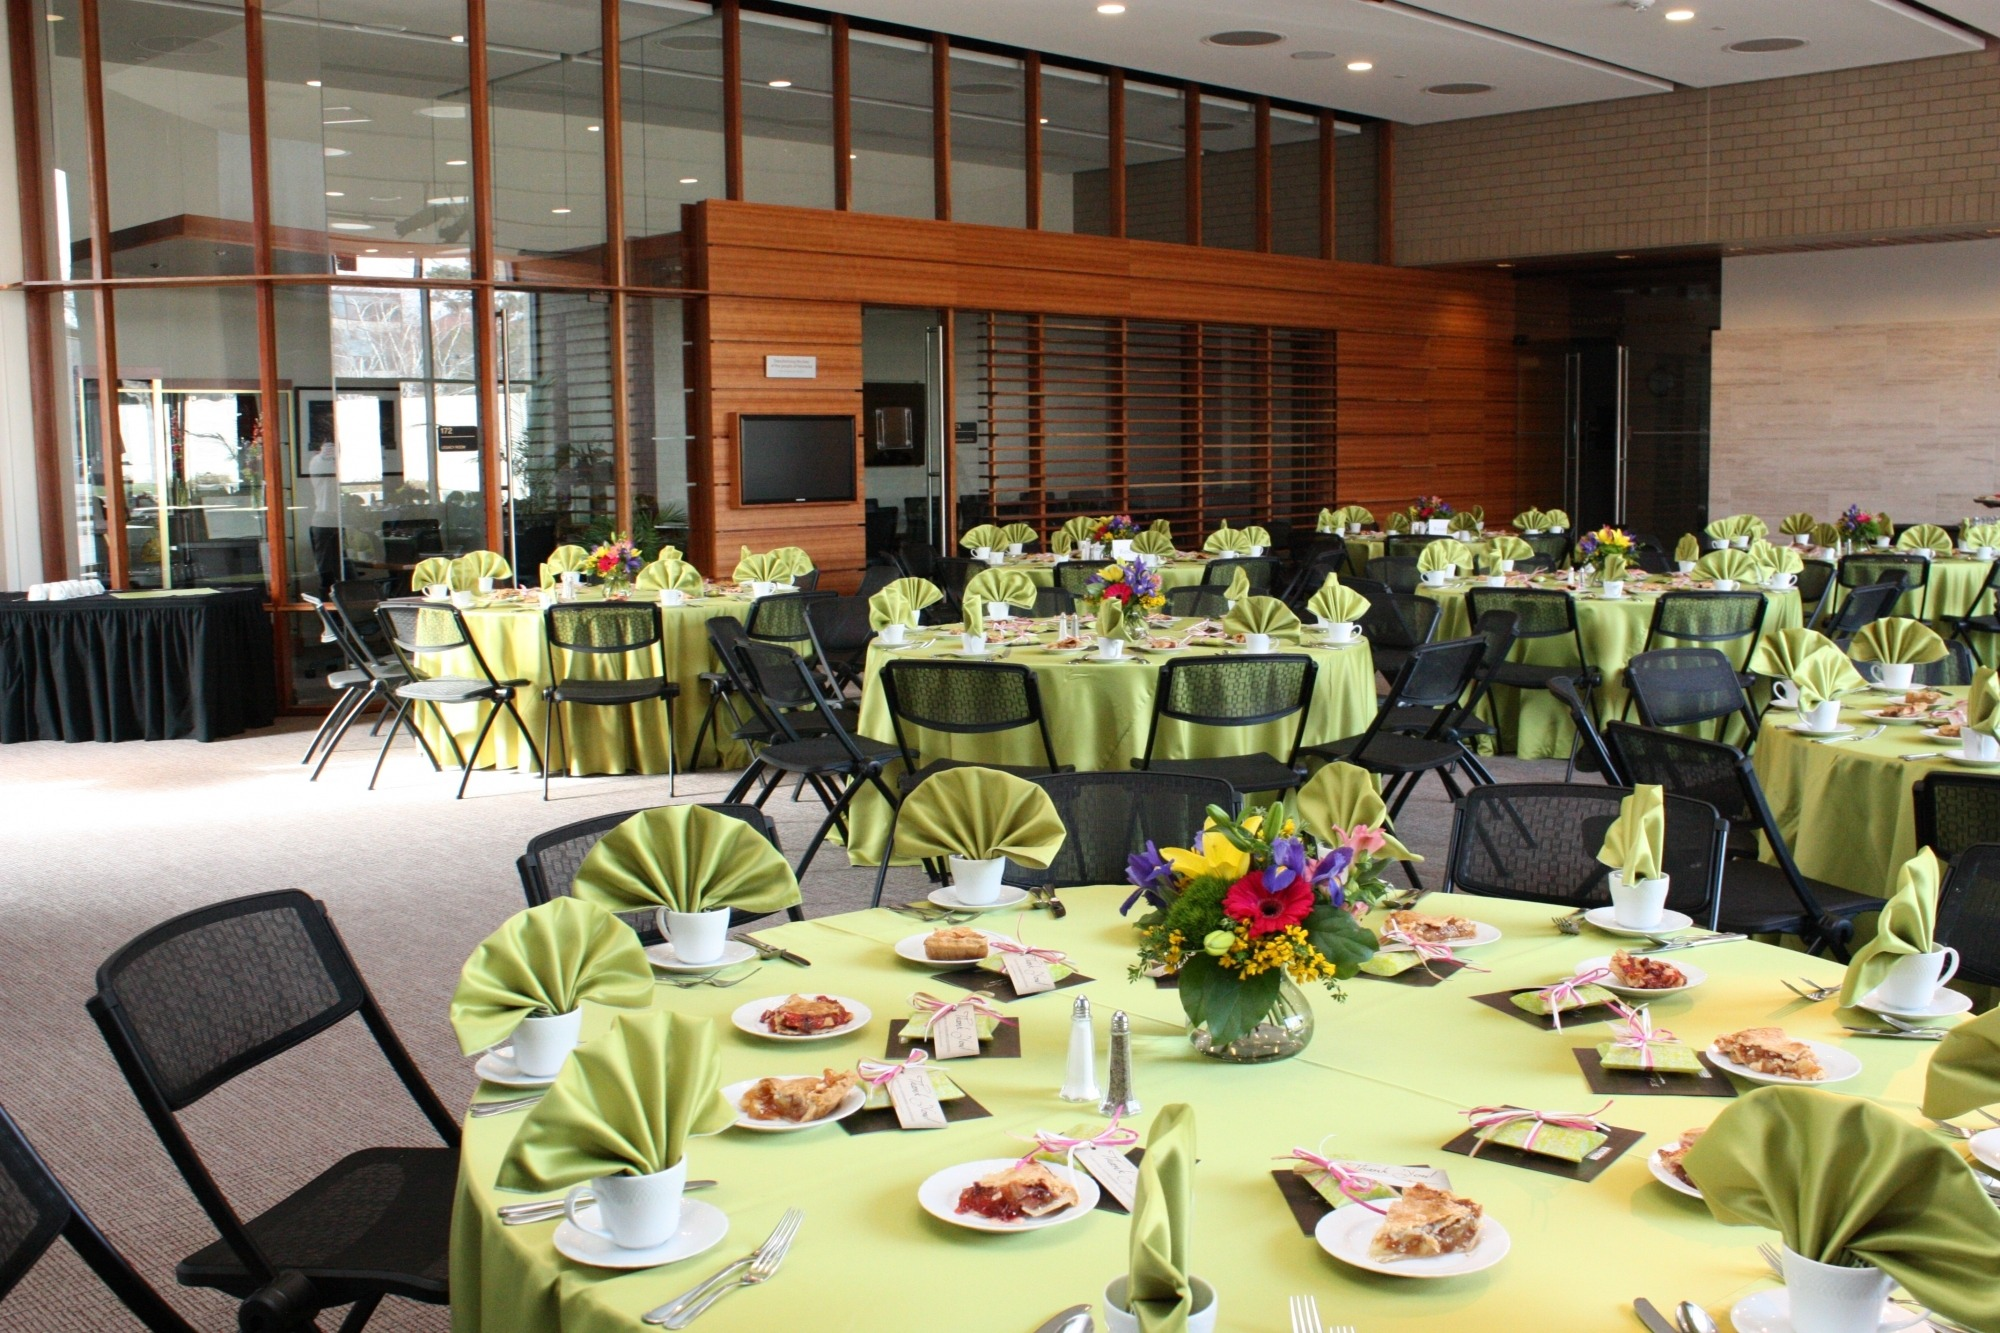 Image of the Lied Commons setup for a luncheon featuring round tables with light green linens and colorful centerpieces.